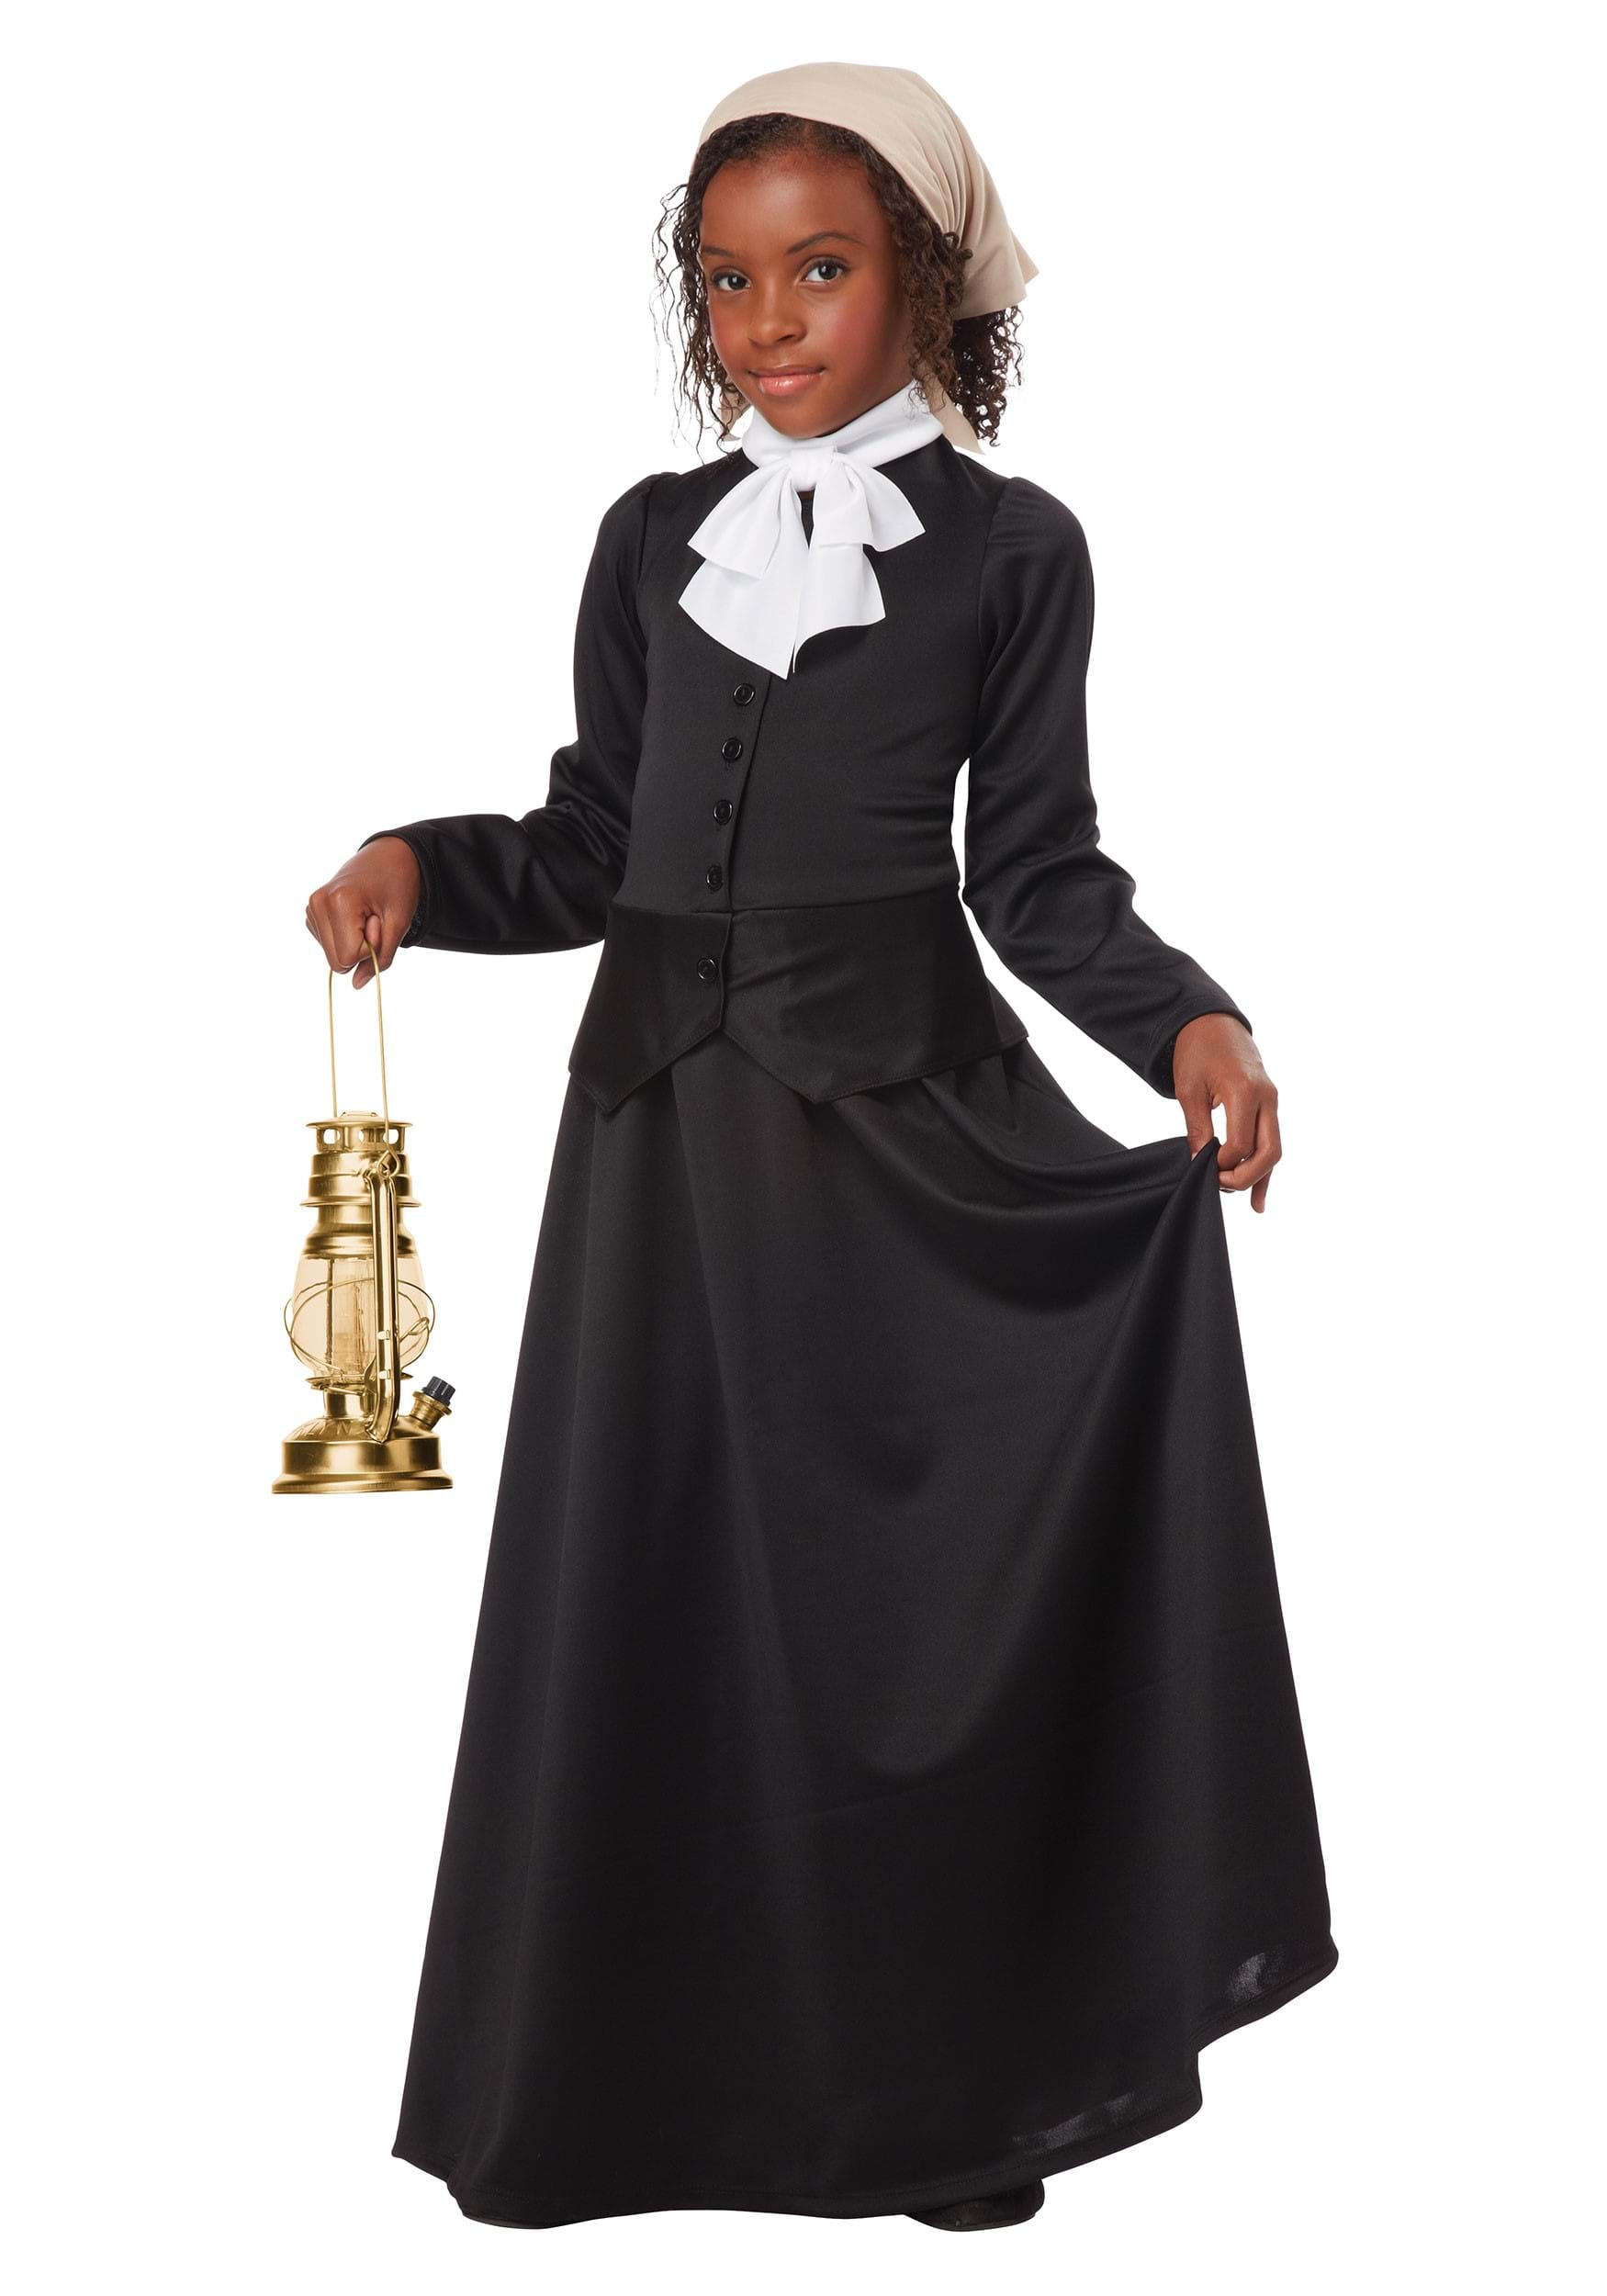 Civil War Reenactment Costumes & Uniforms - HalloweenCostumes.com